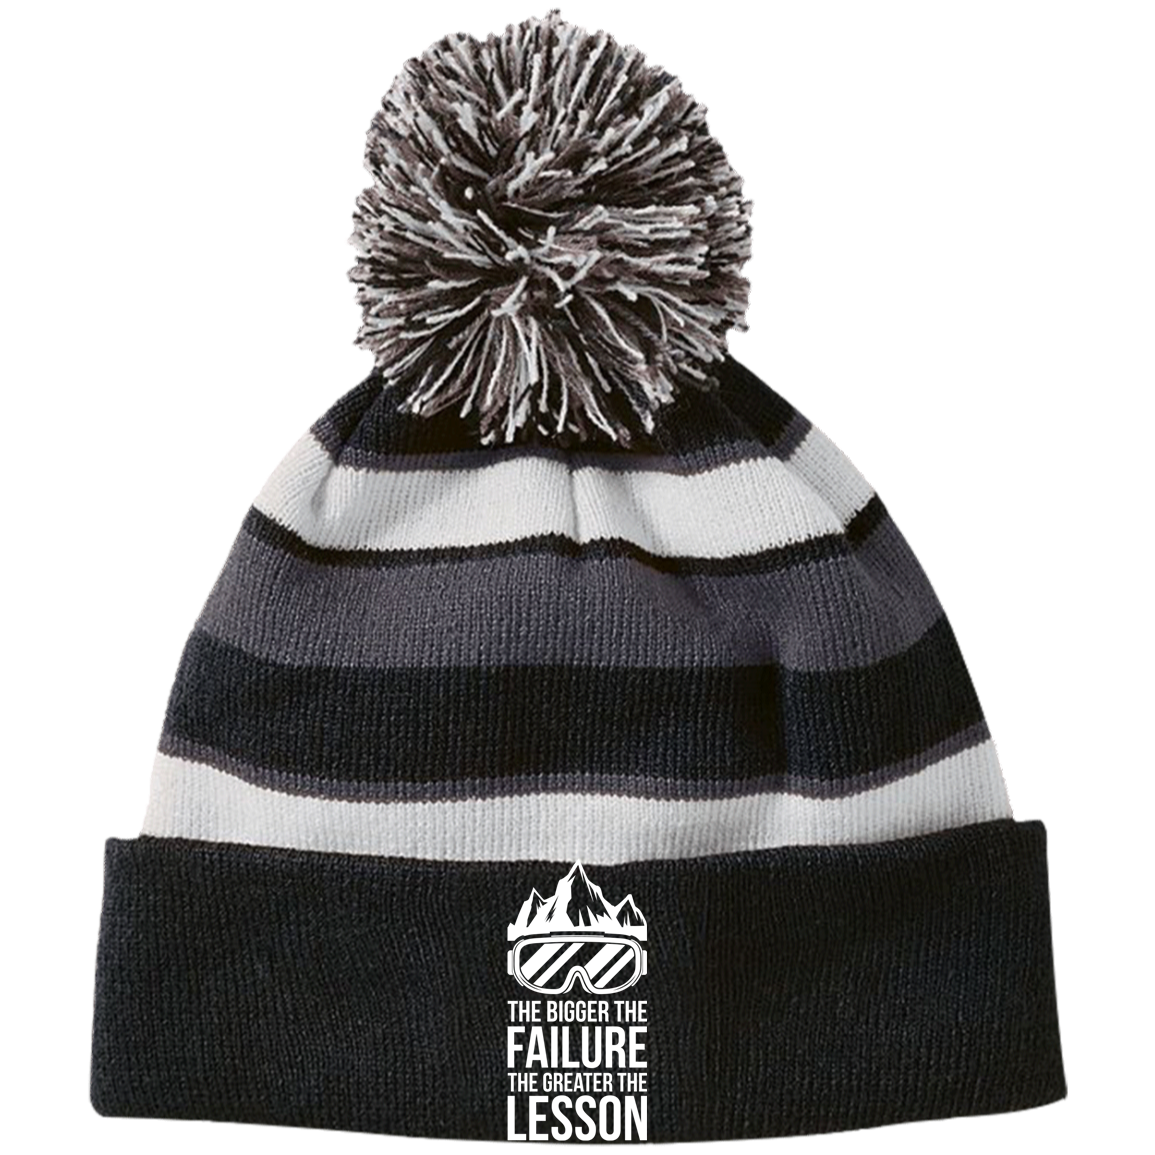 The Bigger The Failure The Greater The Lesson Striped Beanie - Powderaddicts